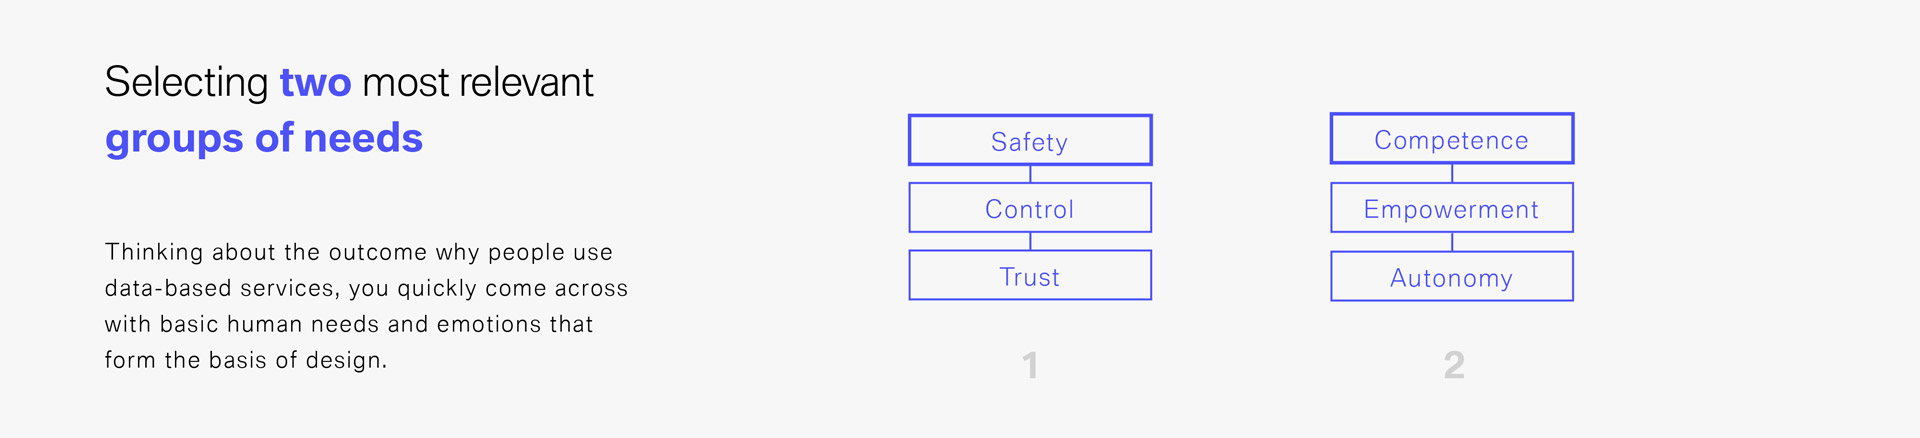 decision safety and competence